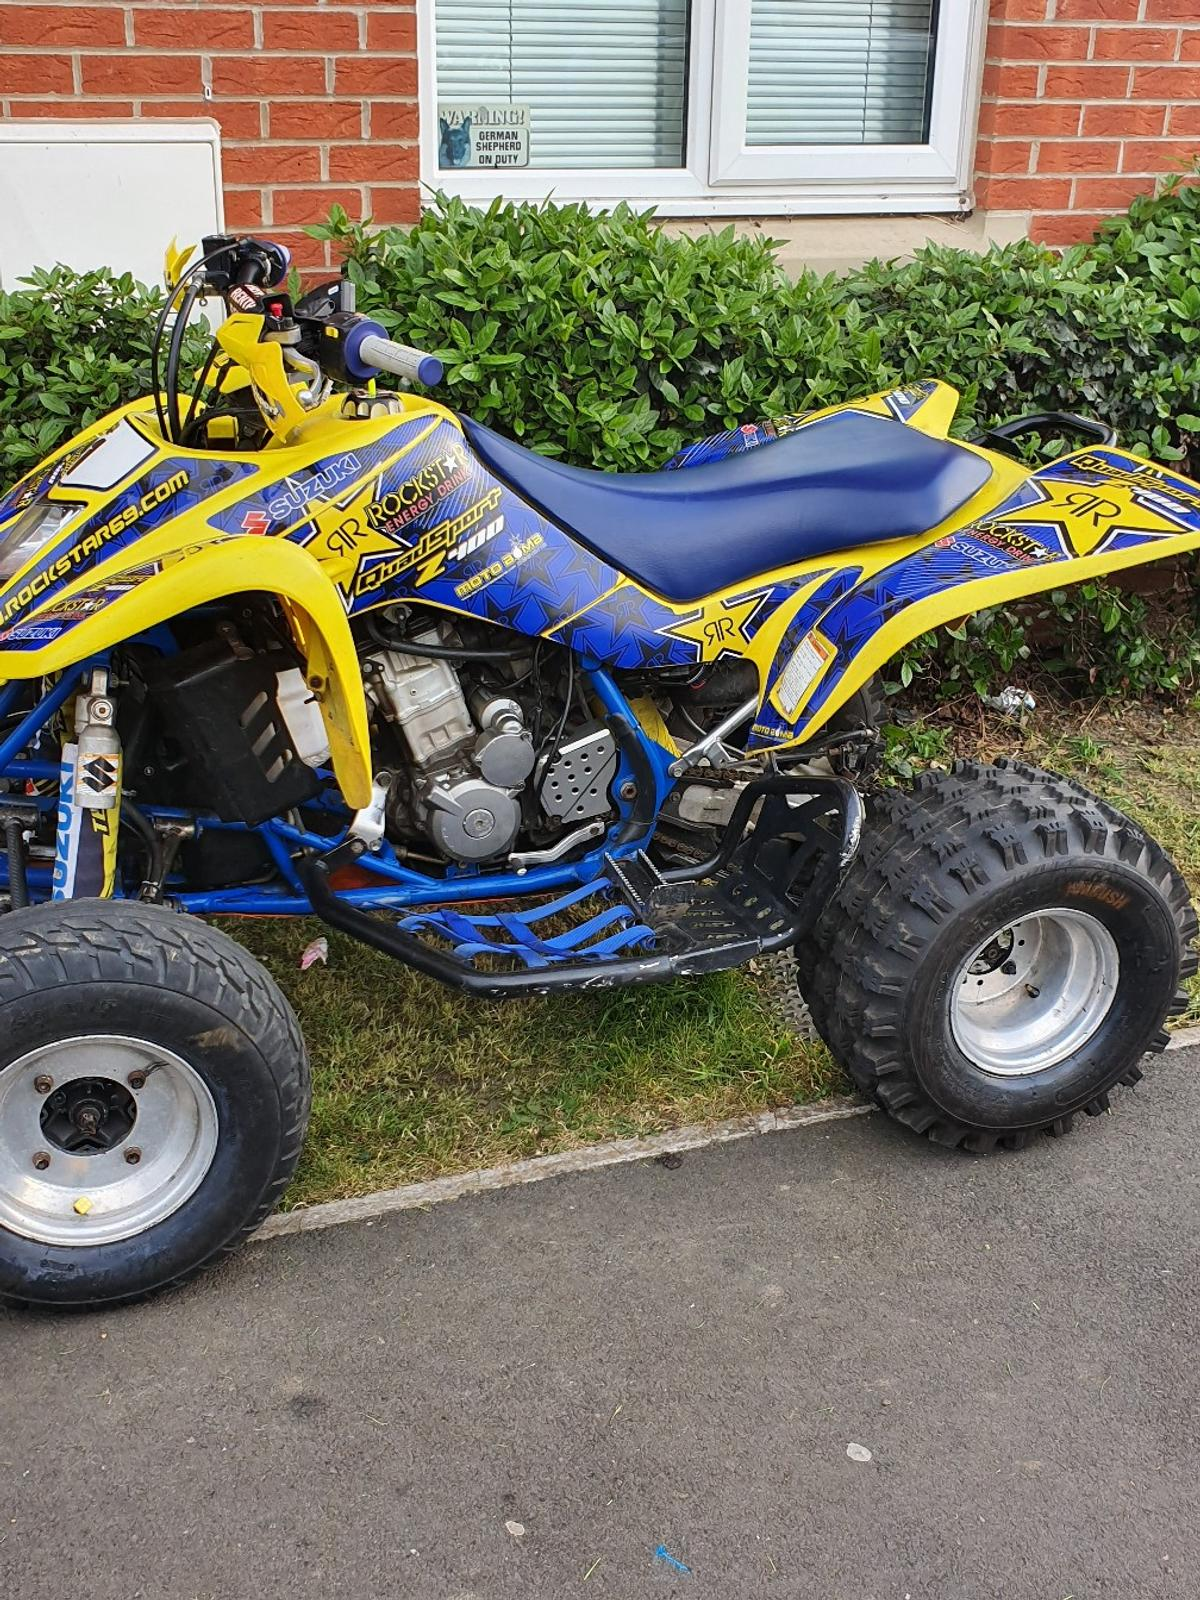 Ltz 400 Road Legal Quad In Ss14 Basildon For 3 000 00 For Sale